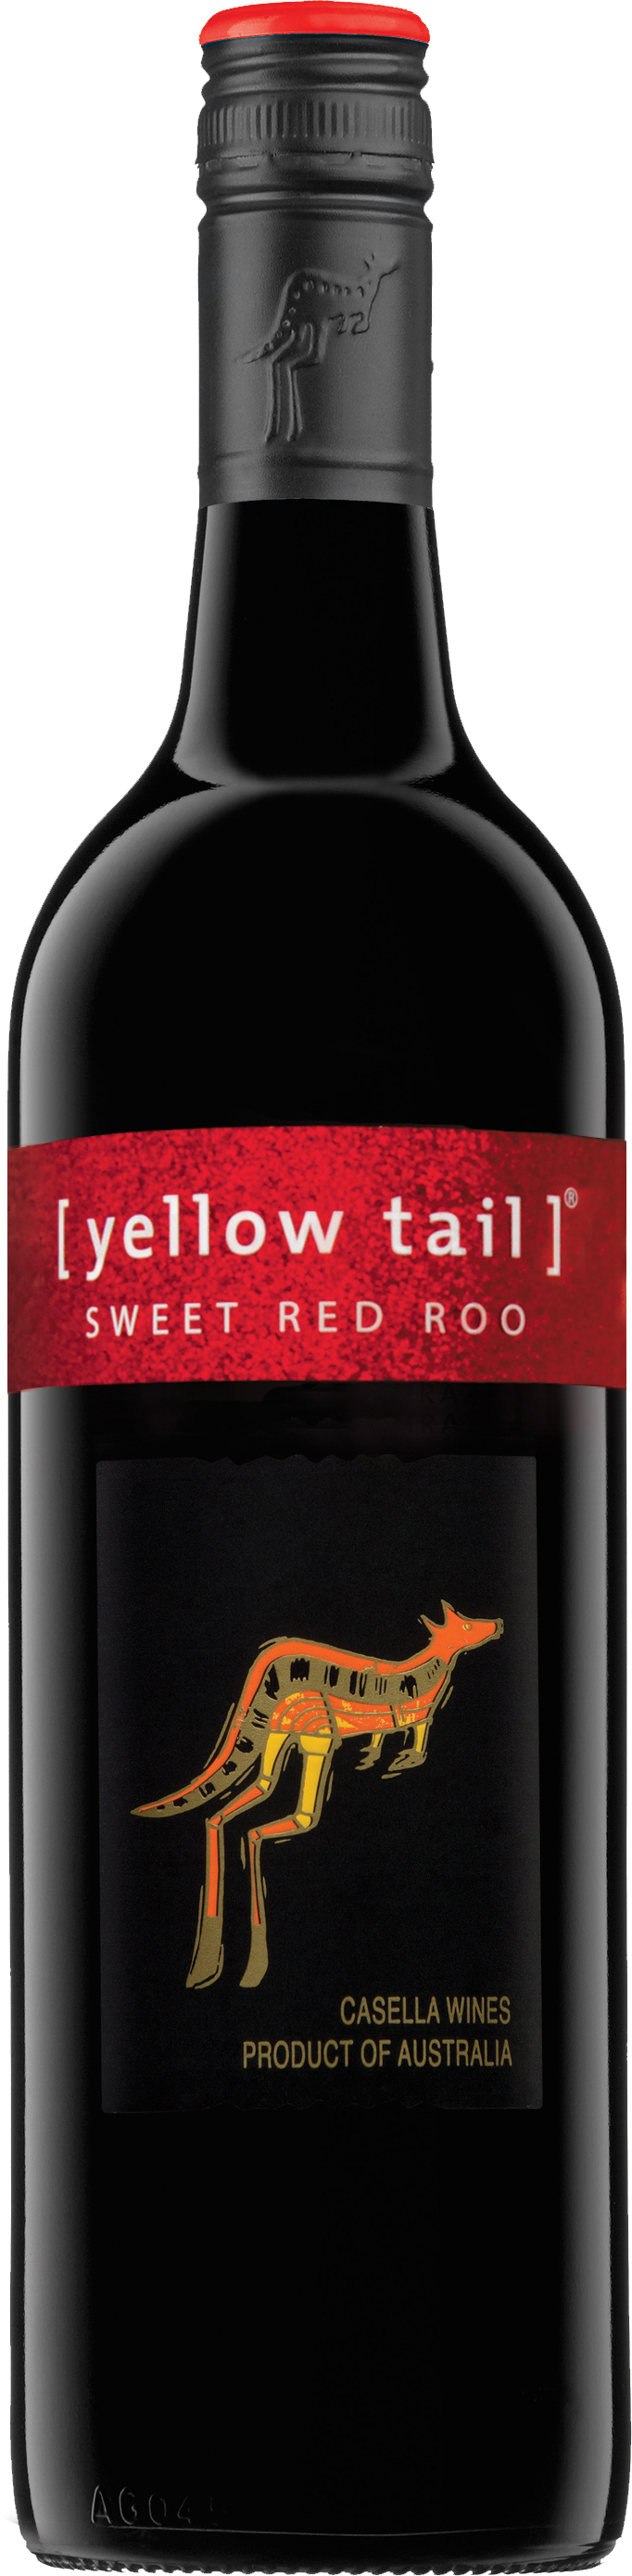 Relaxing With Some Sweet Smooth Fruity And Soothing Red Roo Wine From Yellow Tail While Chilling To Some Soulful Funkie Sweet Wine Sweet Red Wines Red Wine